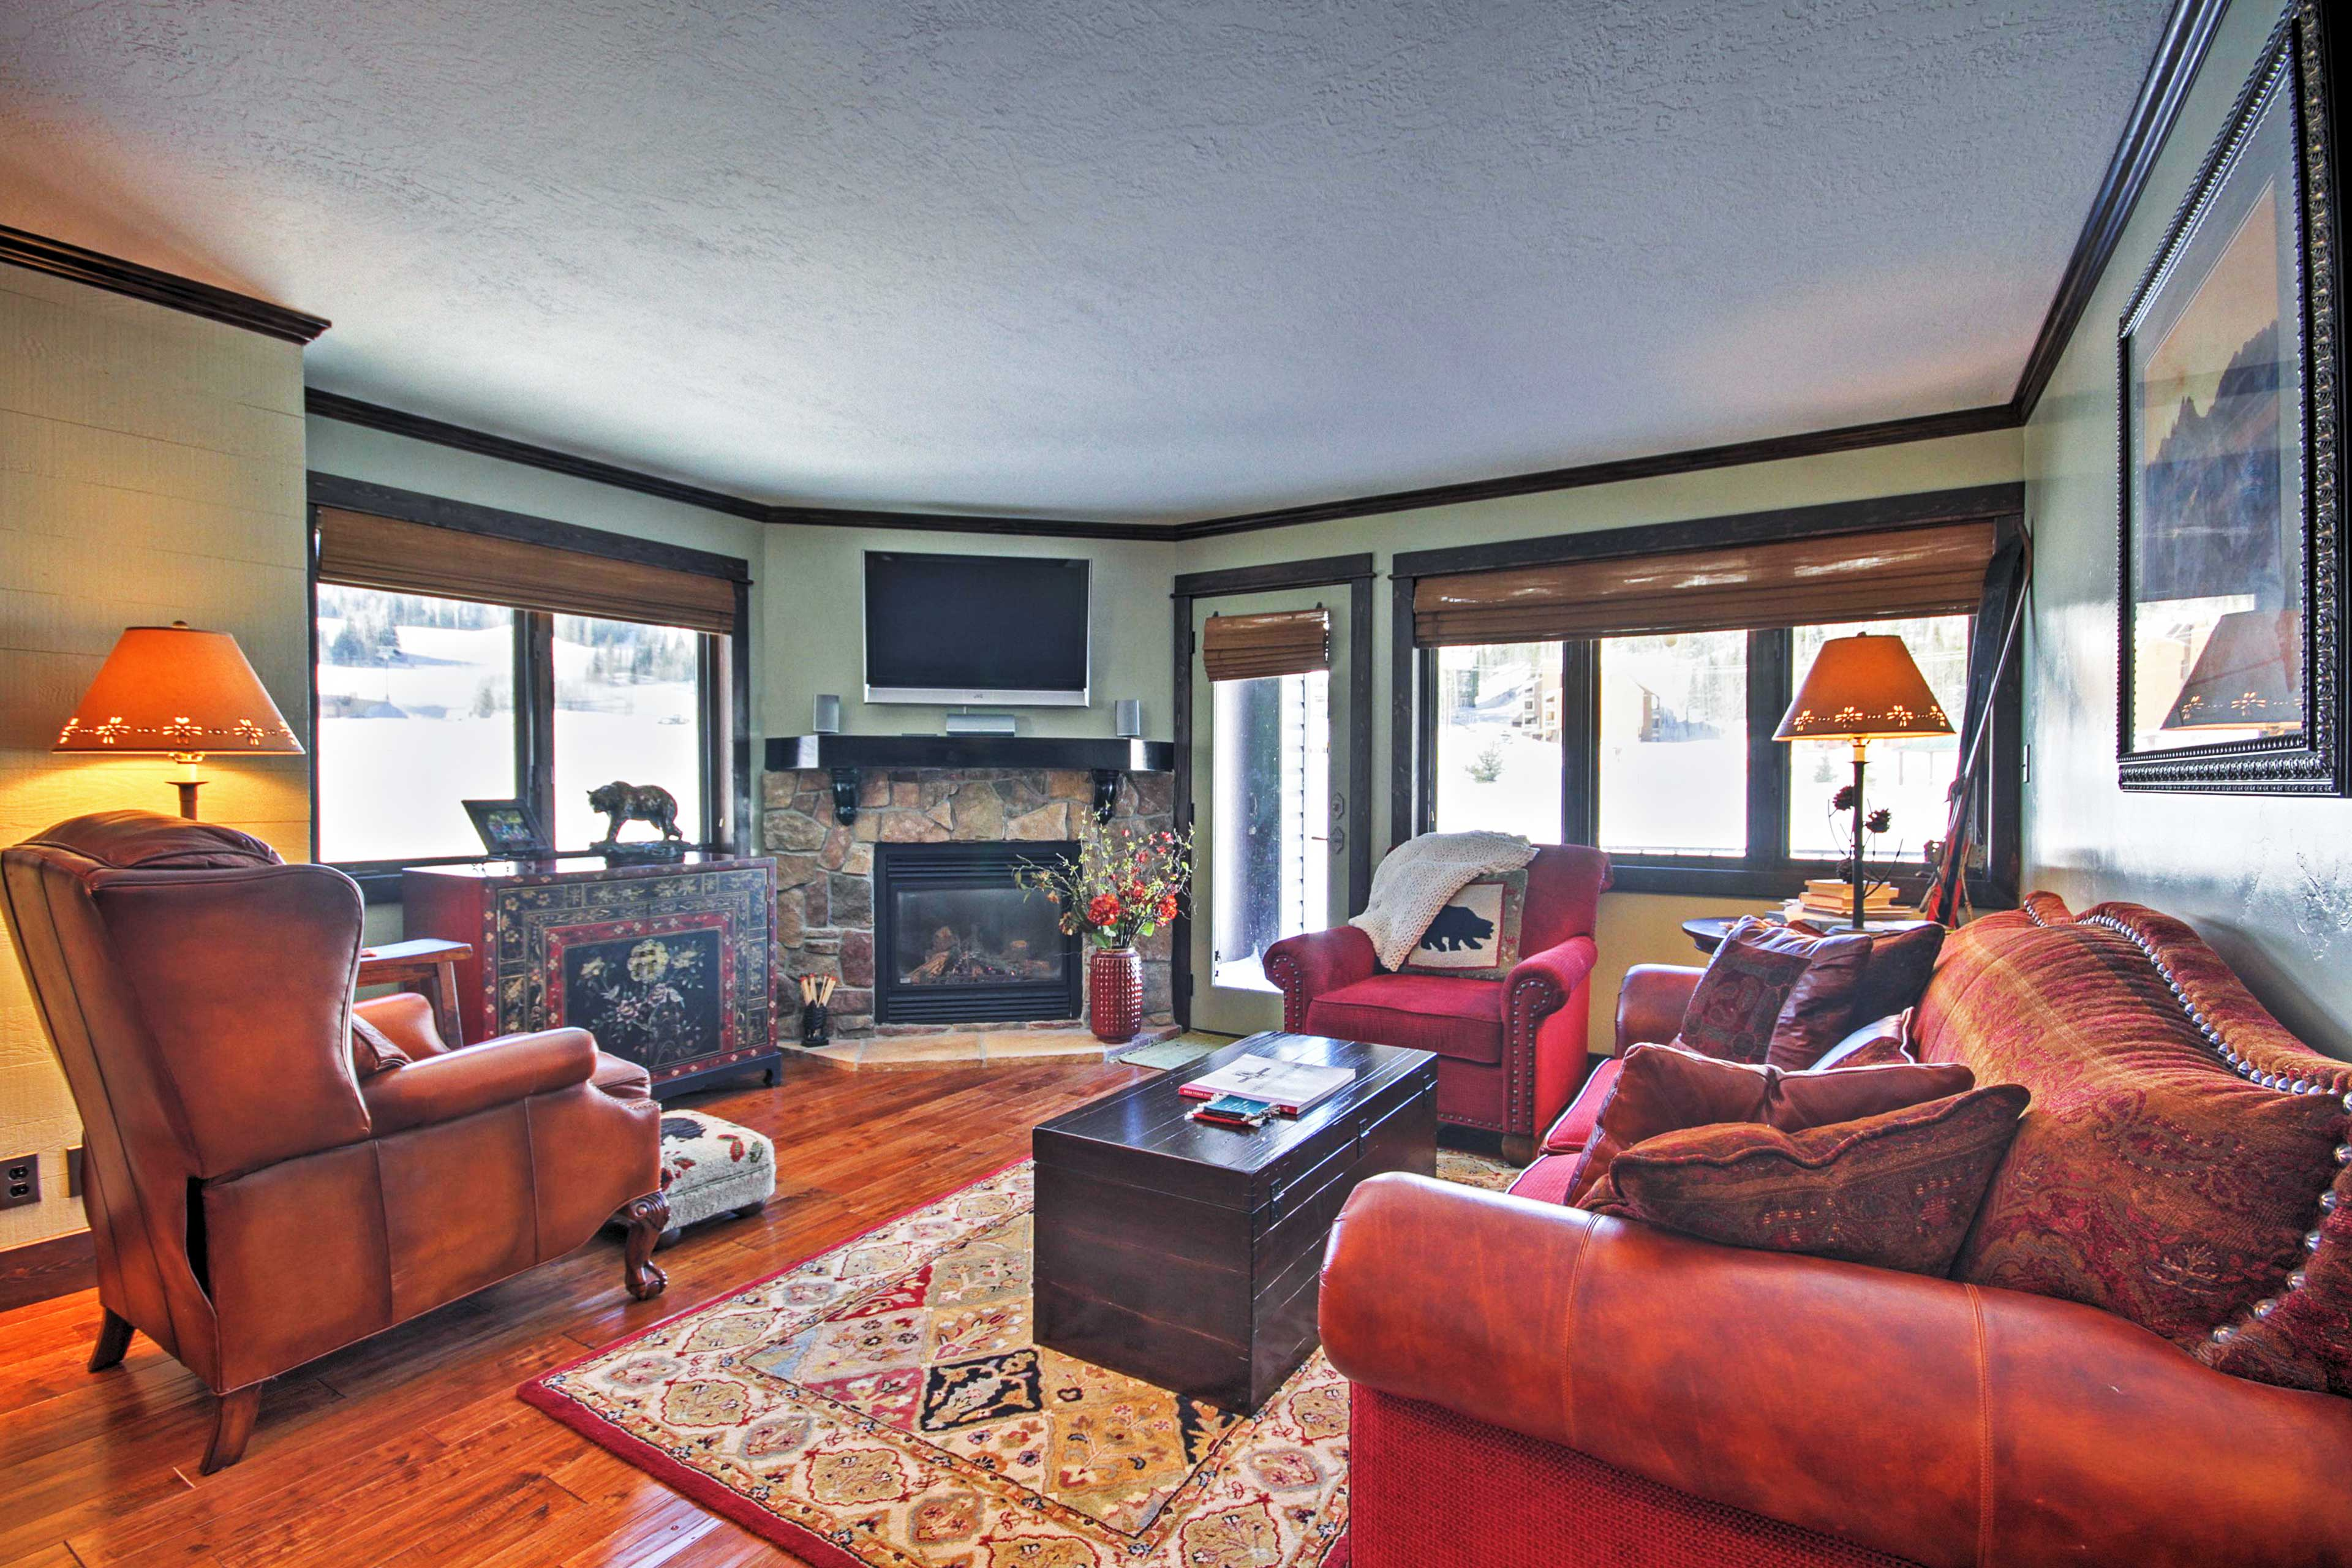 This condo is the only unit in the complex with a gas fireplace!